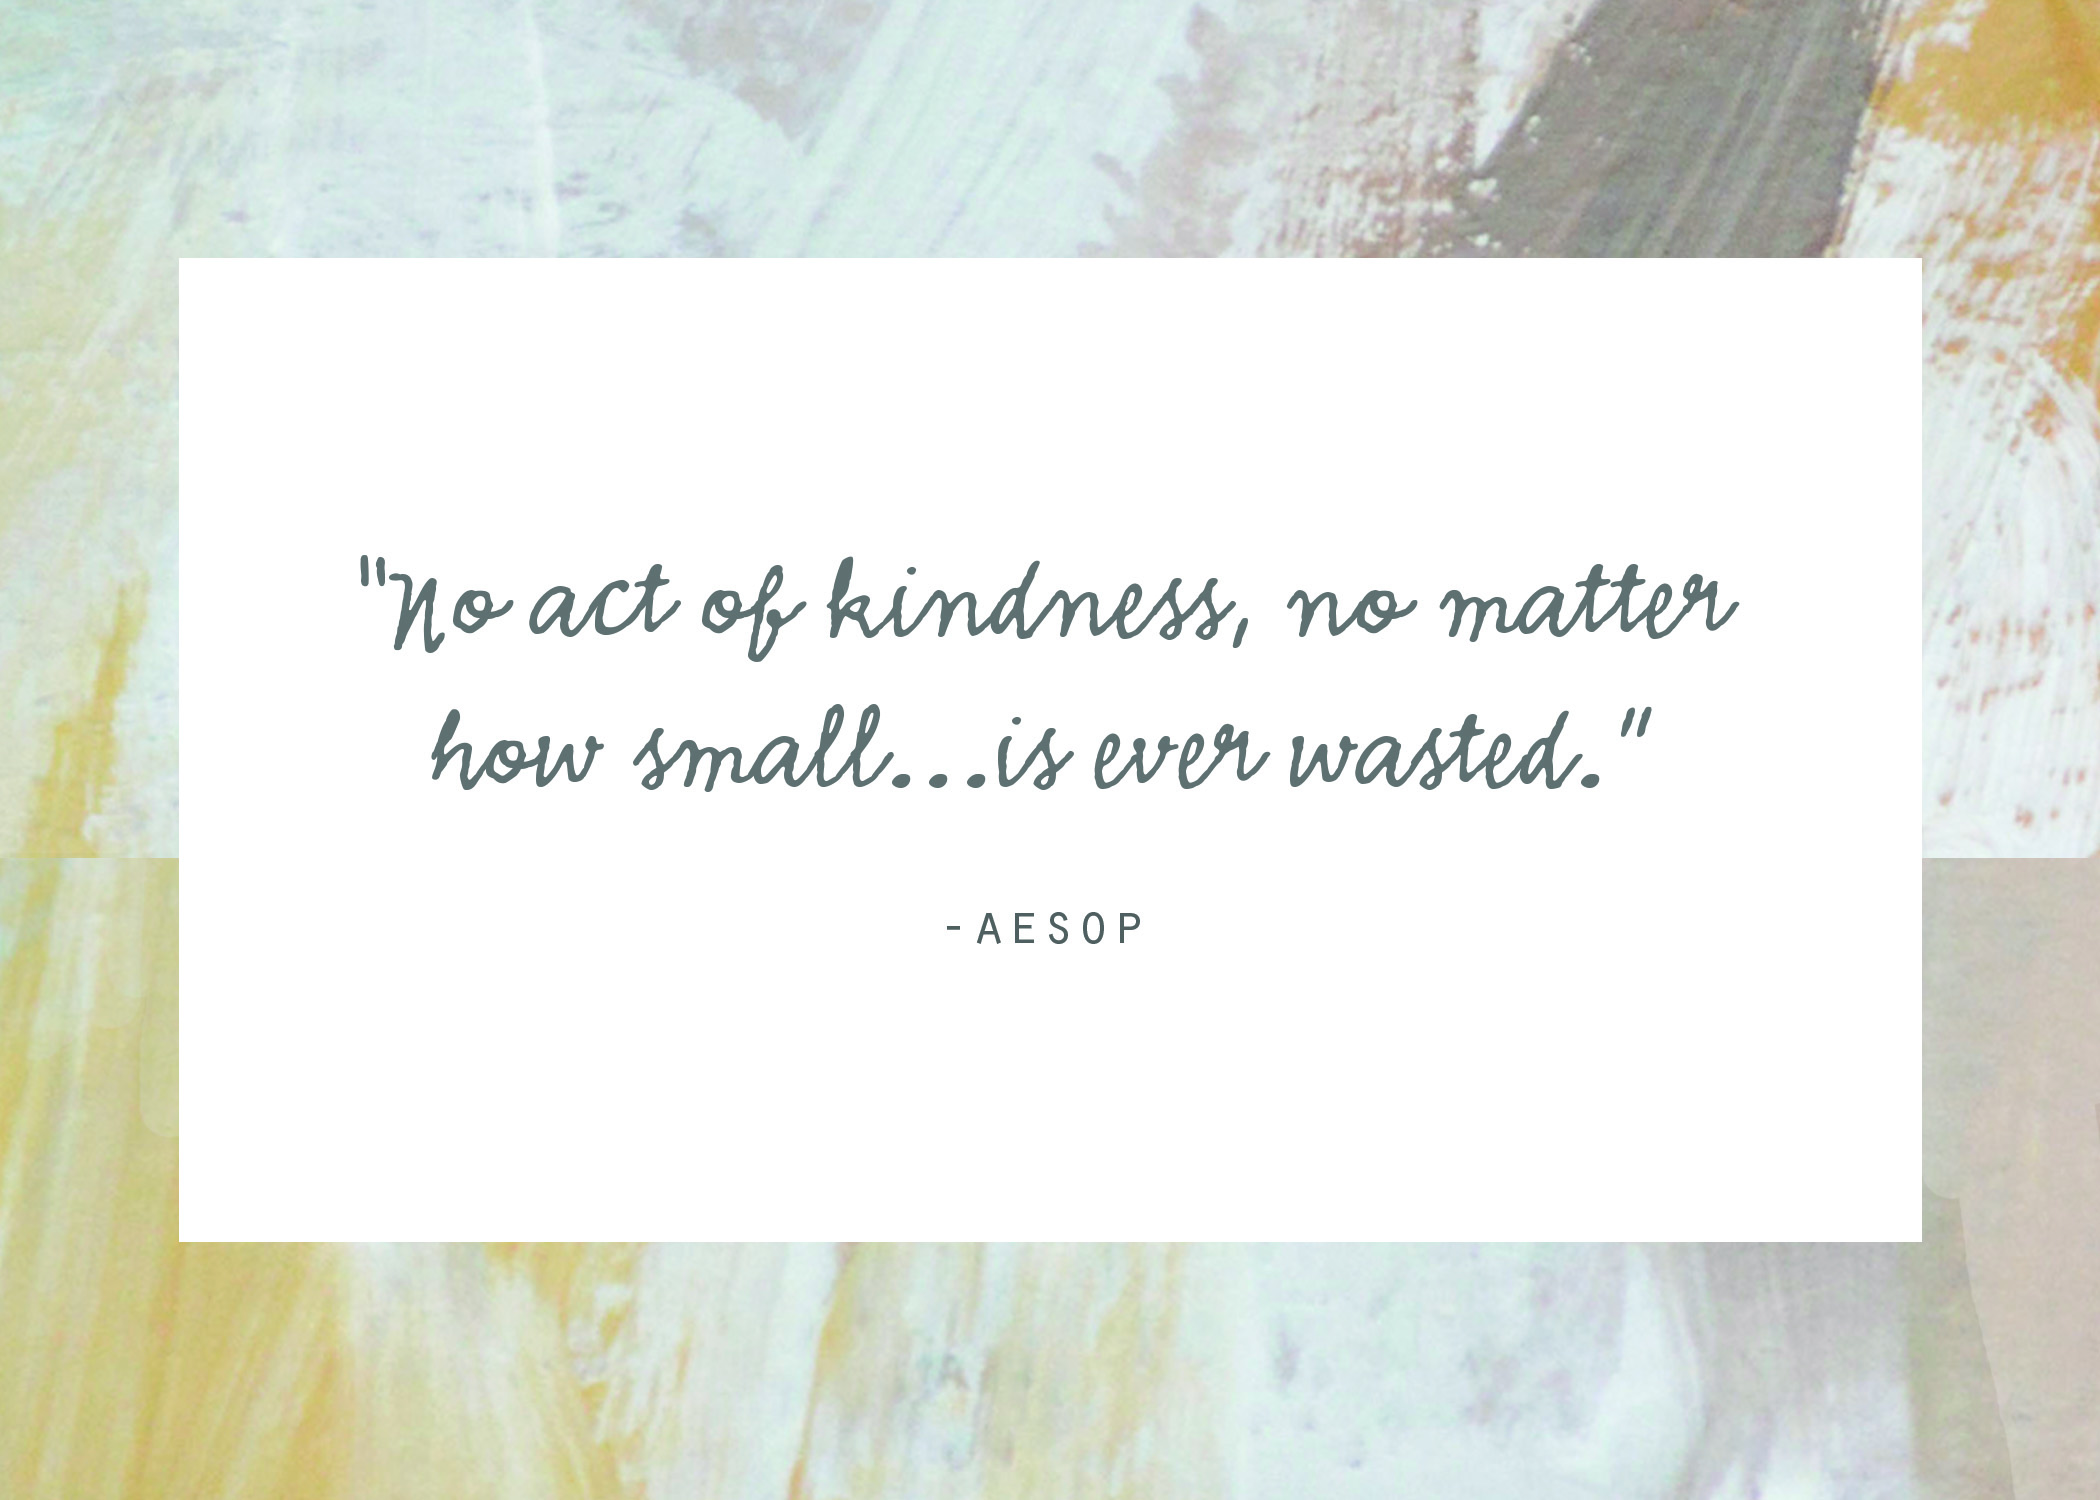 Quote About Kindness Resources For Teaching Kindness  Playful Learning